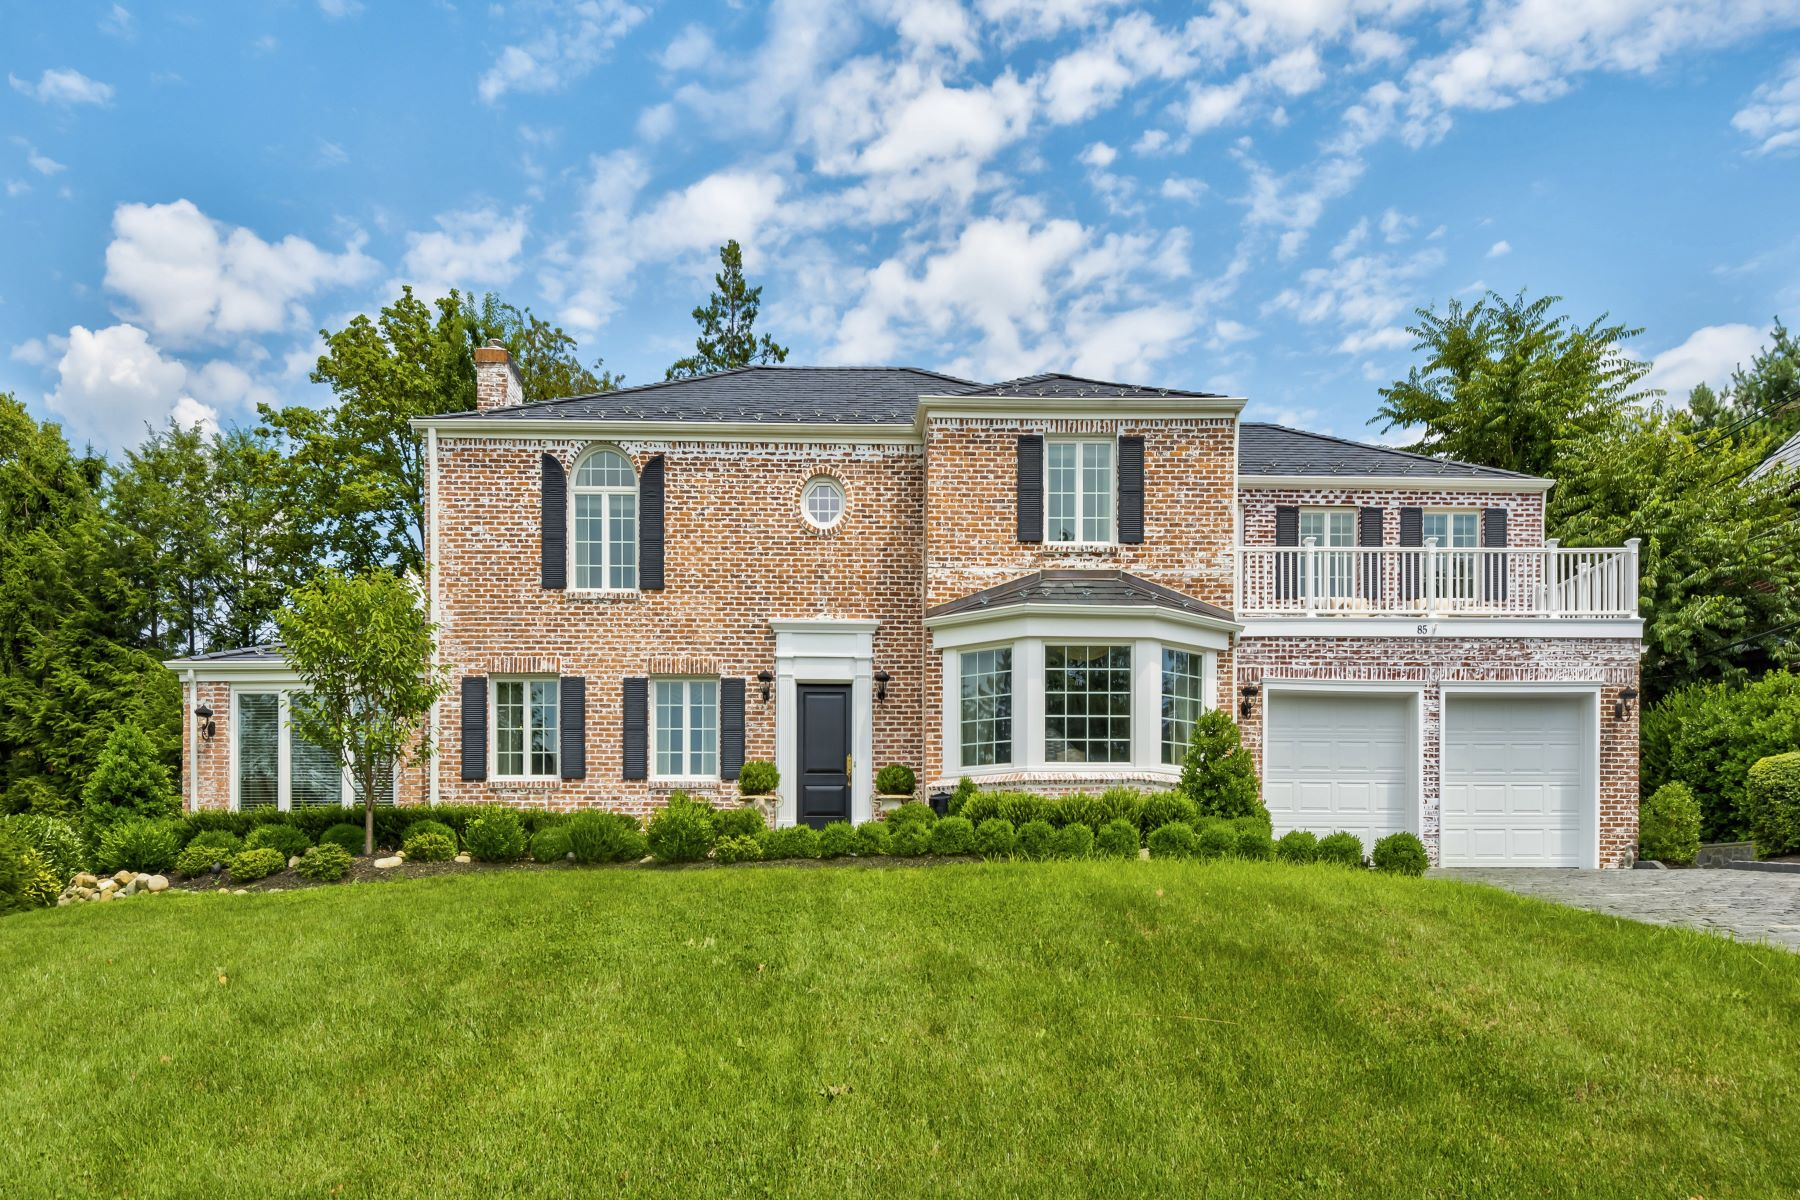 Single Family Homes for Active at Manhasset 85 Sherry Hill Ln Manhasset, New York 11030 United States